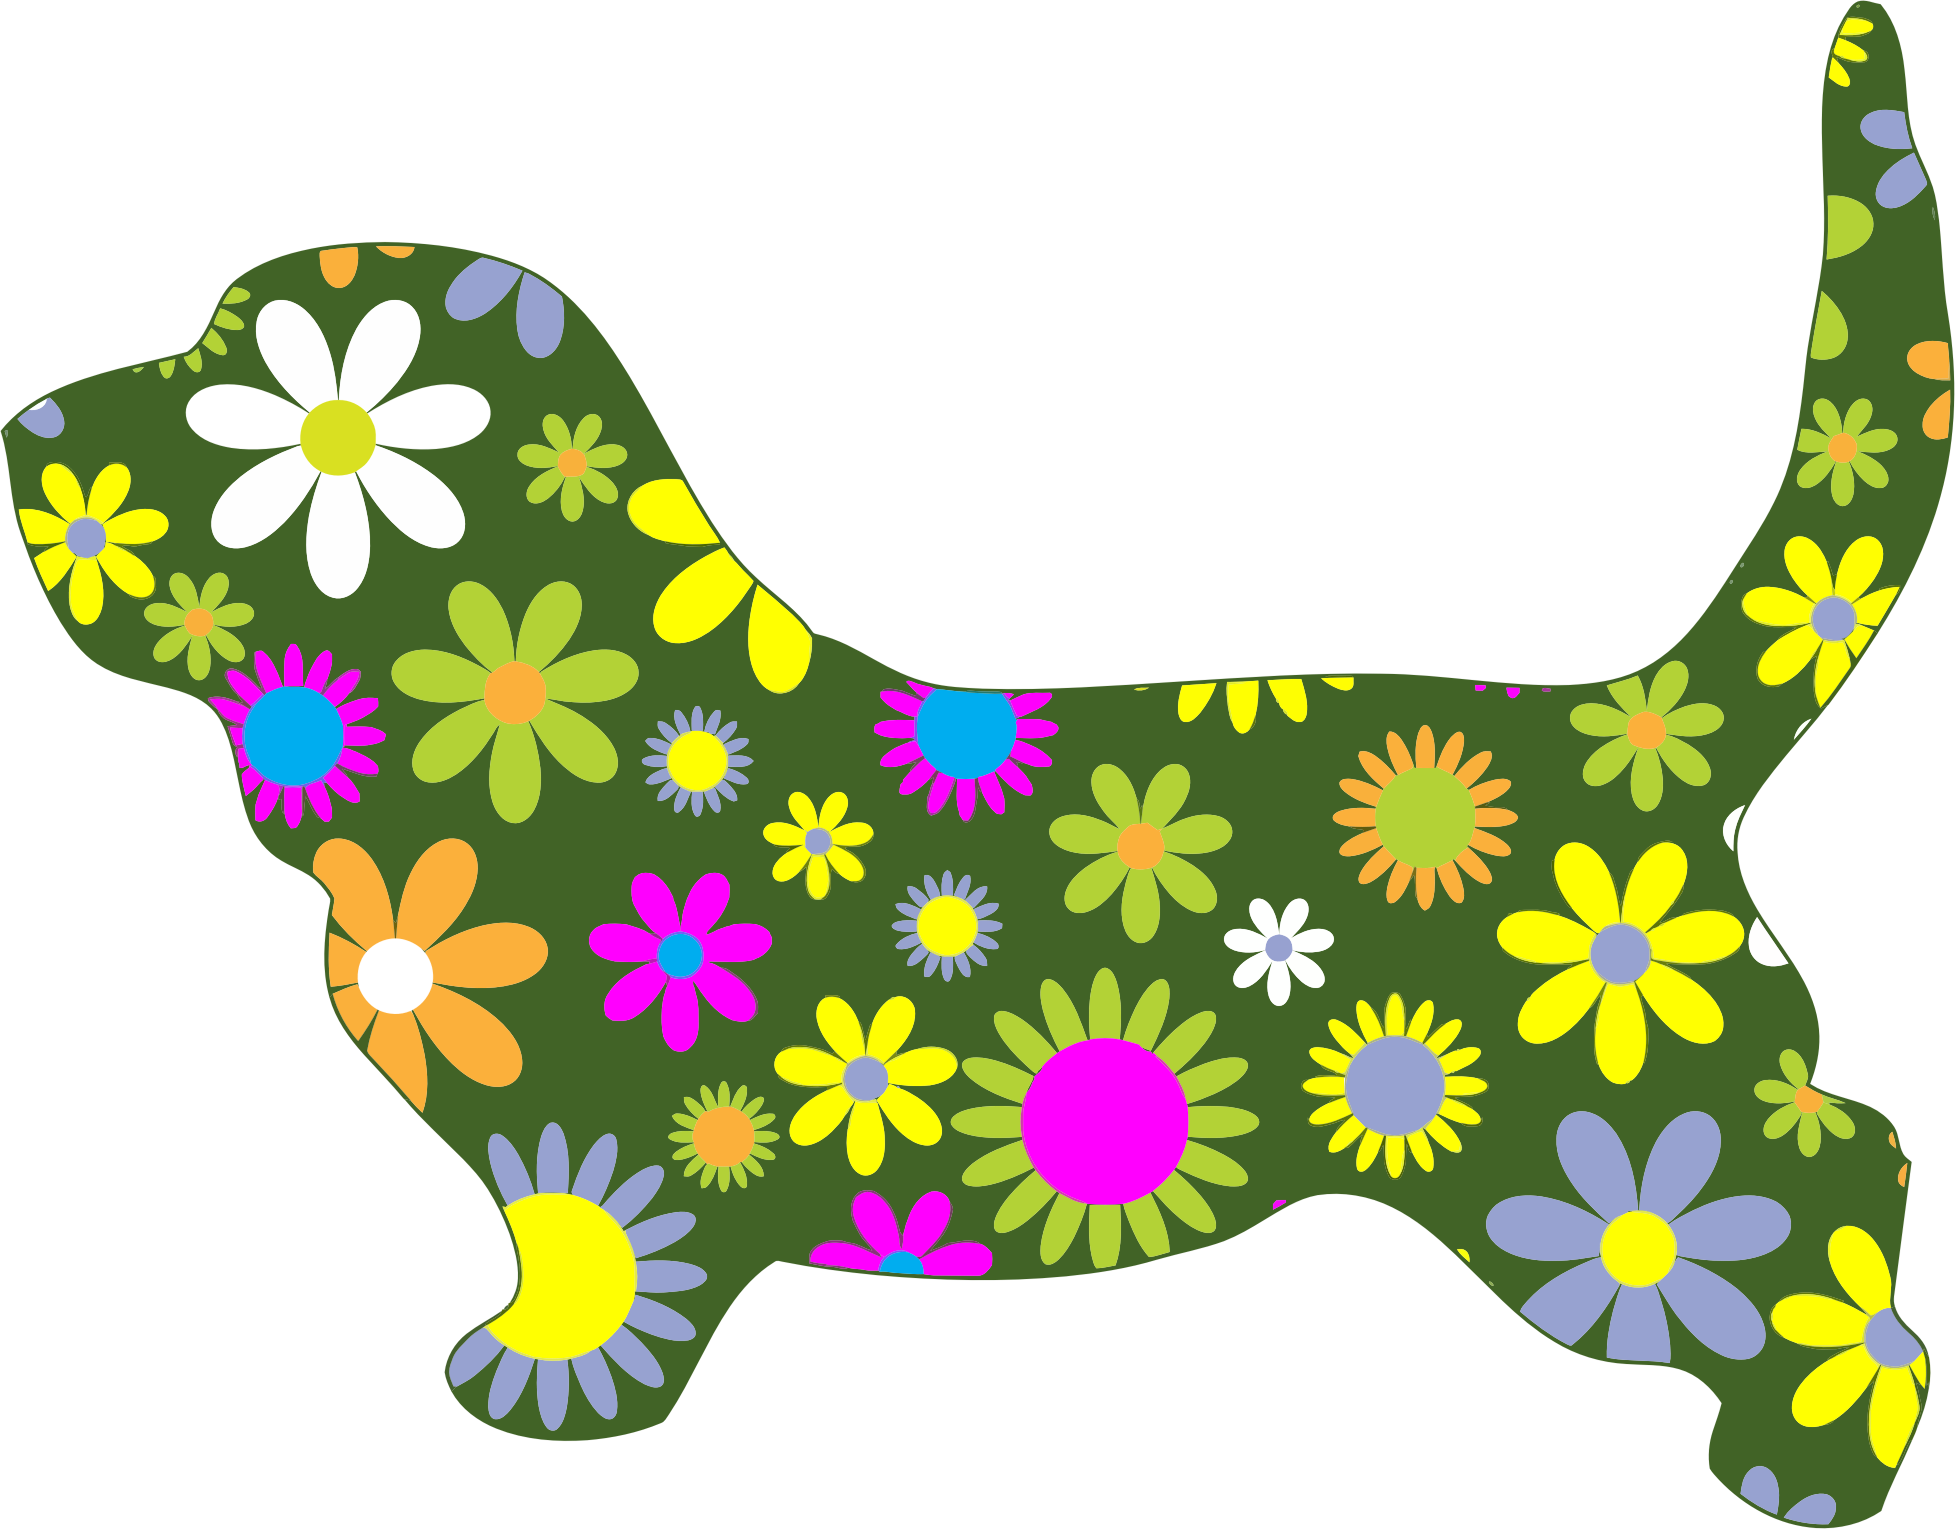 Retro Floral Dog by GDJ